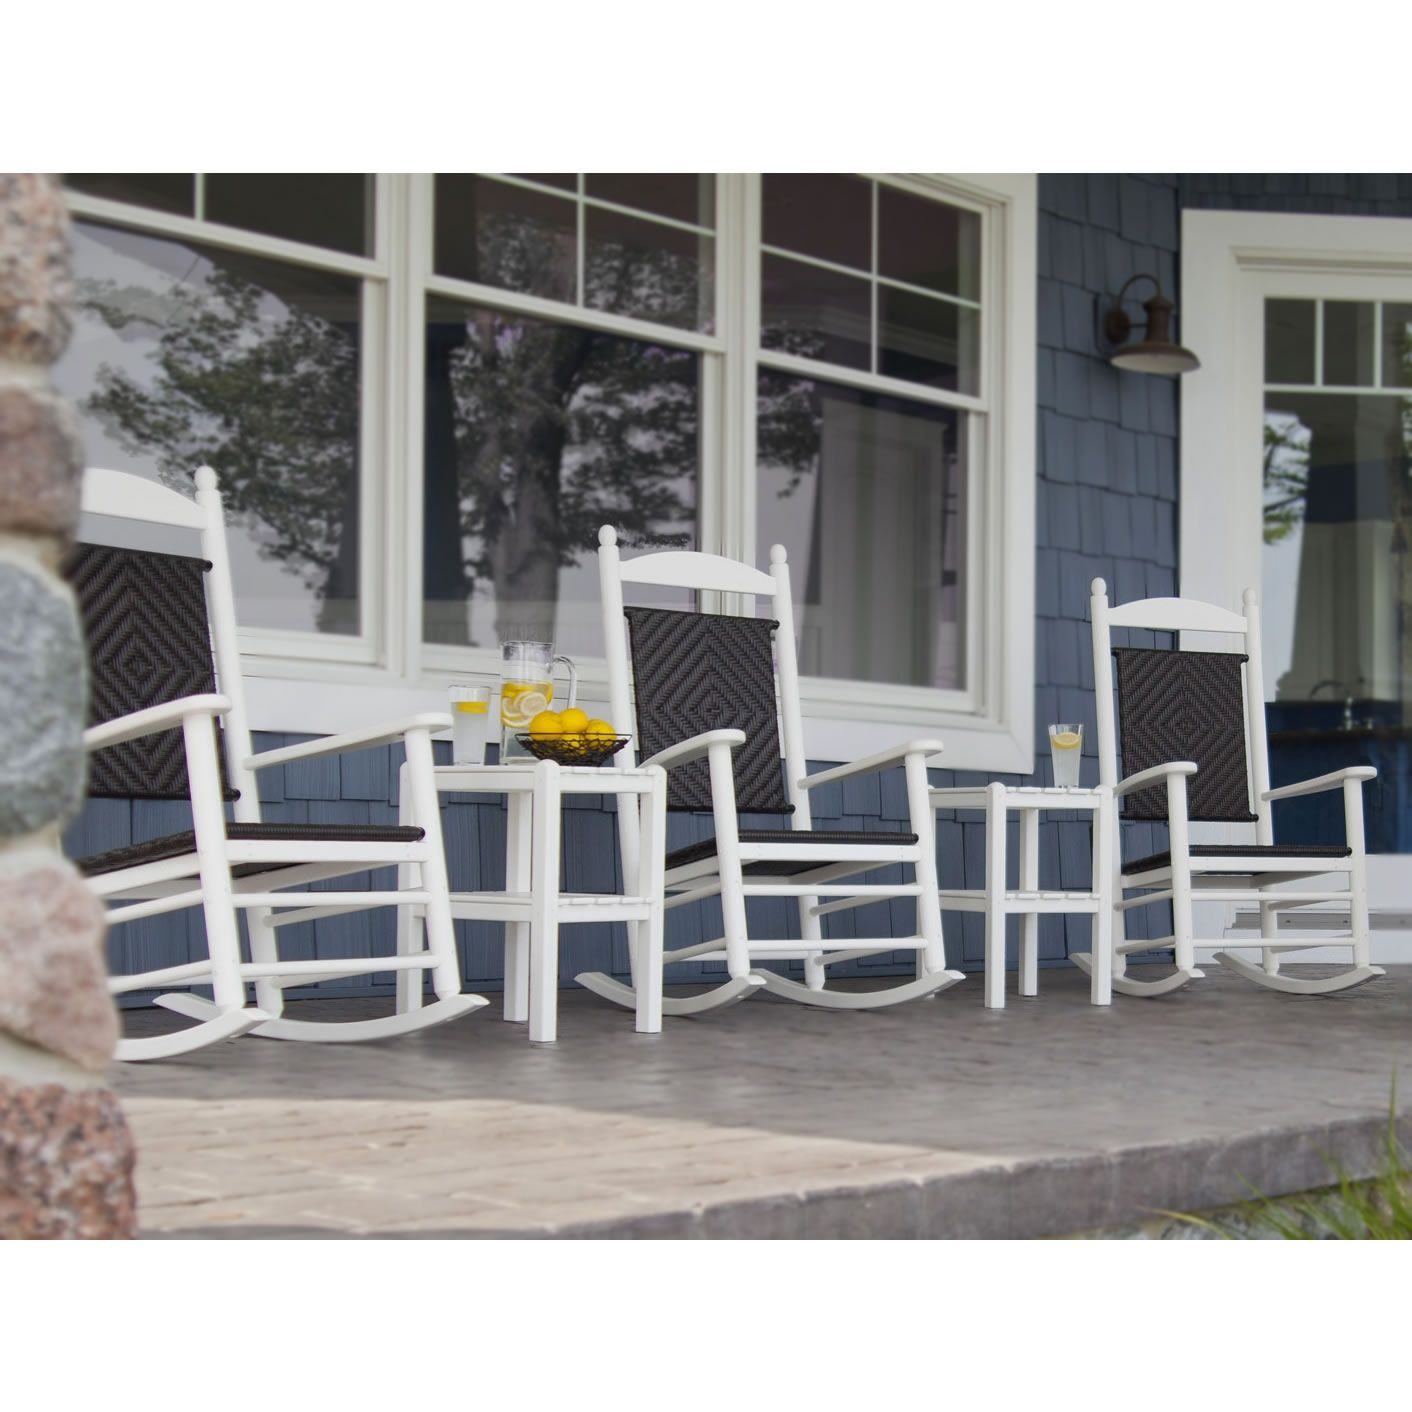 man porch wooden front in chairs chair video footage stock on videoblocks rocking